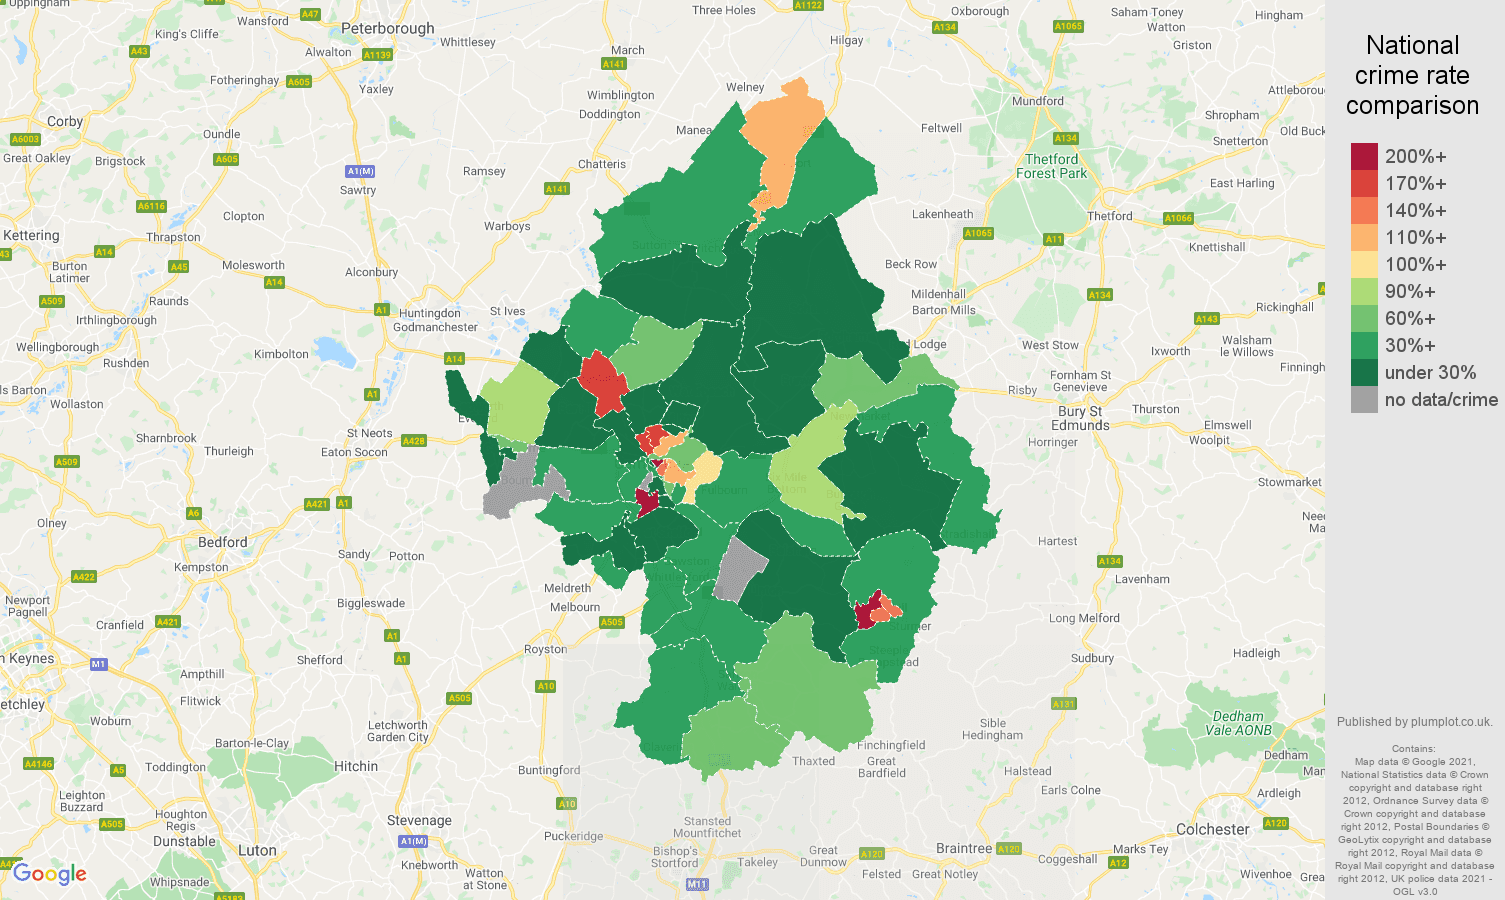 Cambridge drugs crime rate comparison map